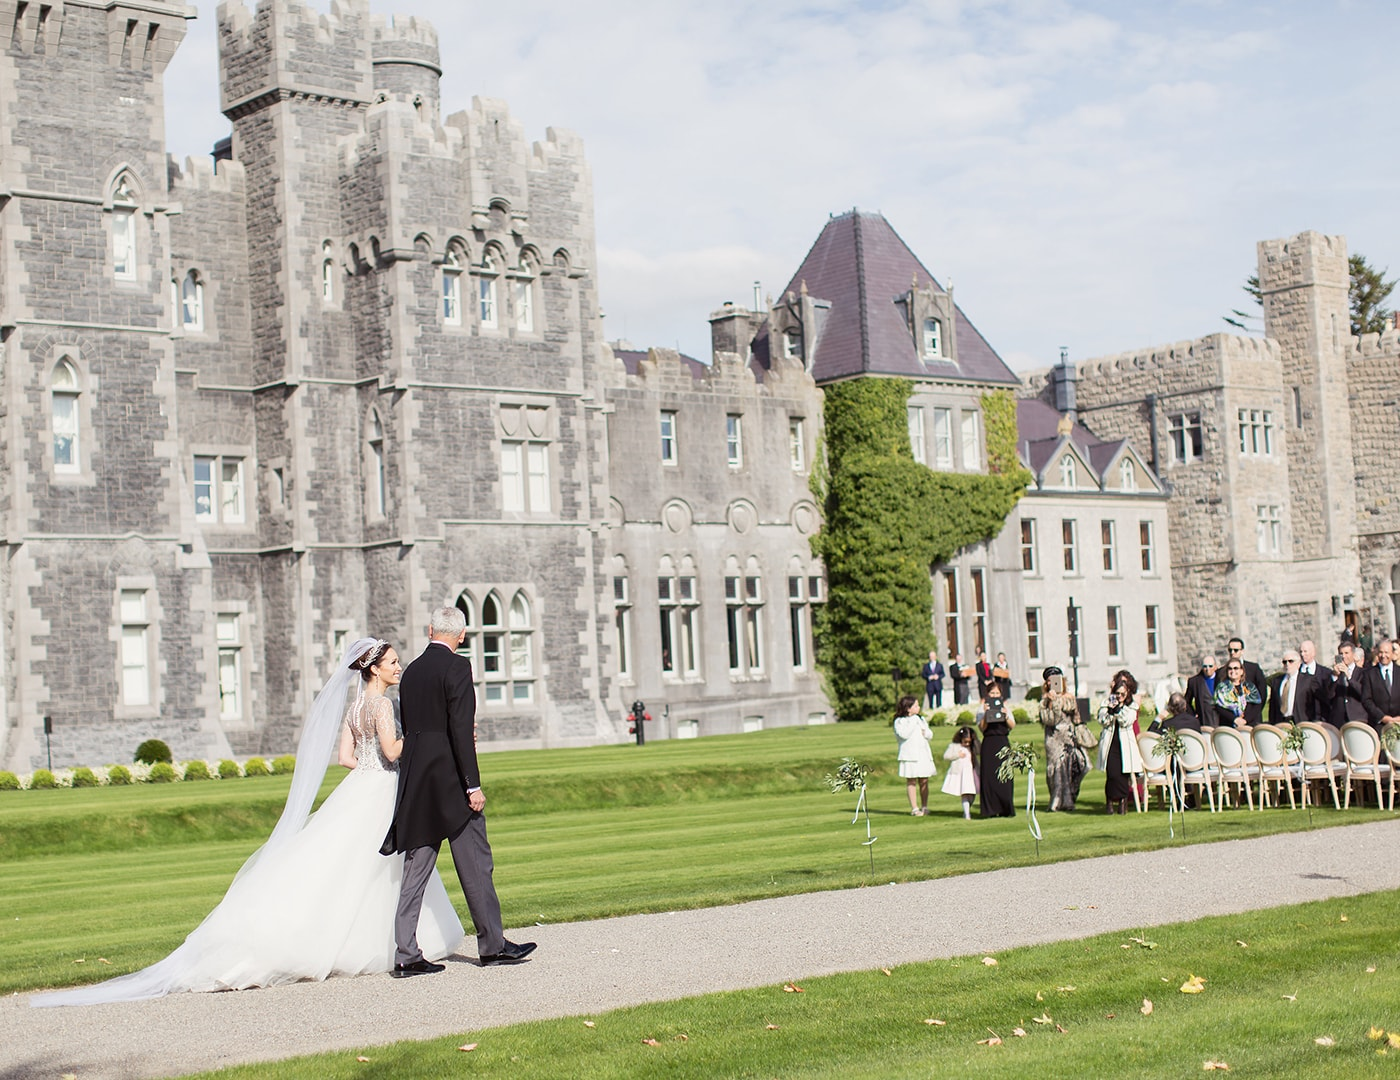 Irish Castle Wedding, Destination Weddings Ireland, Event planners in Ireland, Destination Weddings